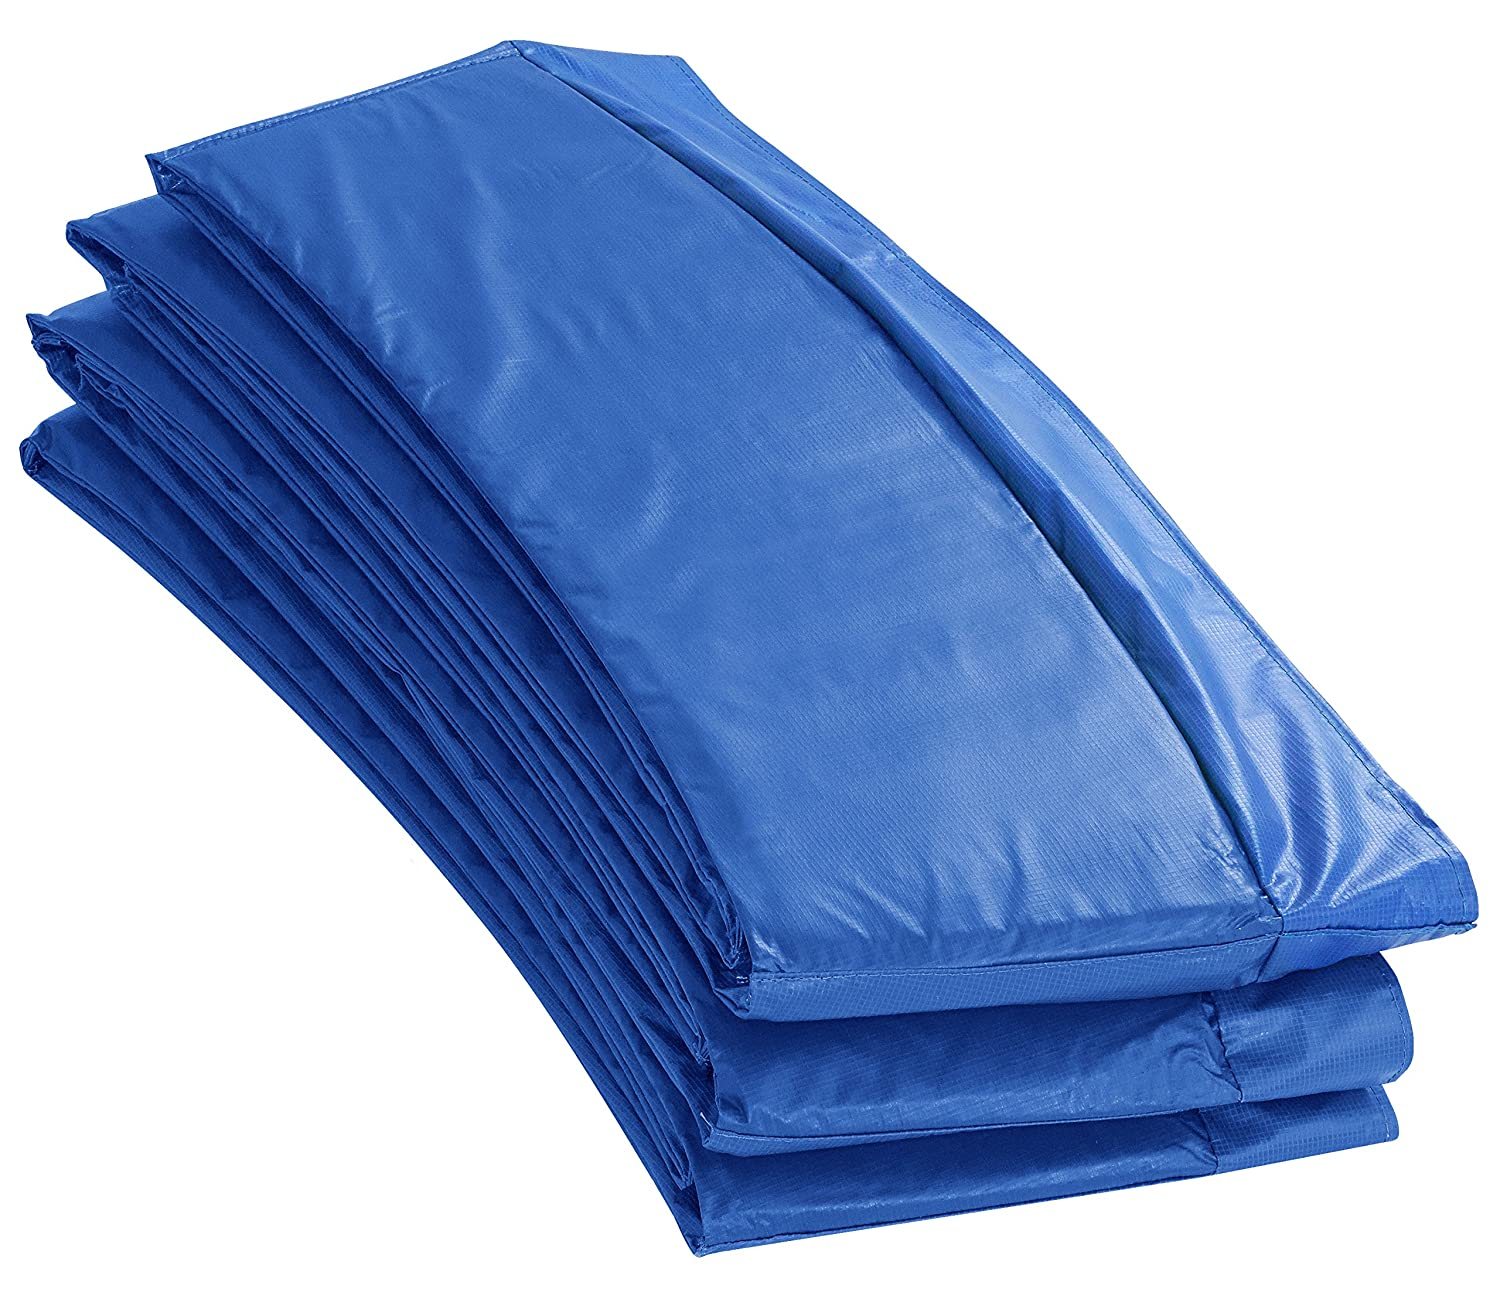 16' Super Trampoline Safety Pad (Spring Cover) Fits for 16 FT. Round Trampoline Frames. 10 wide - Blue Upper Bounce